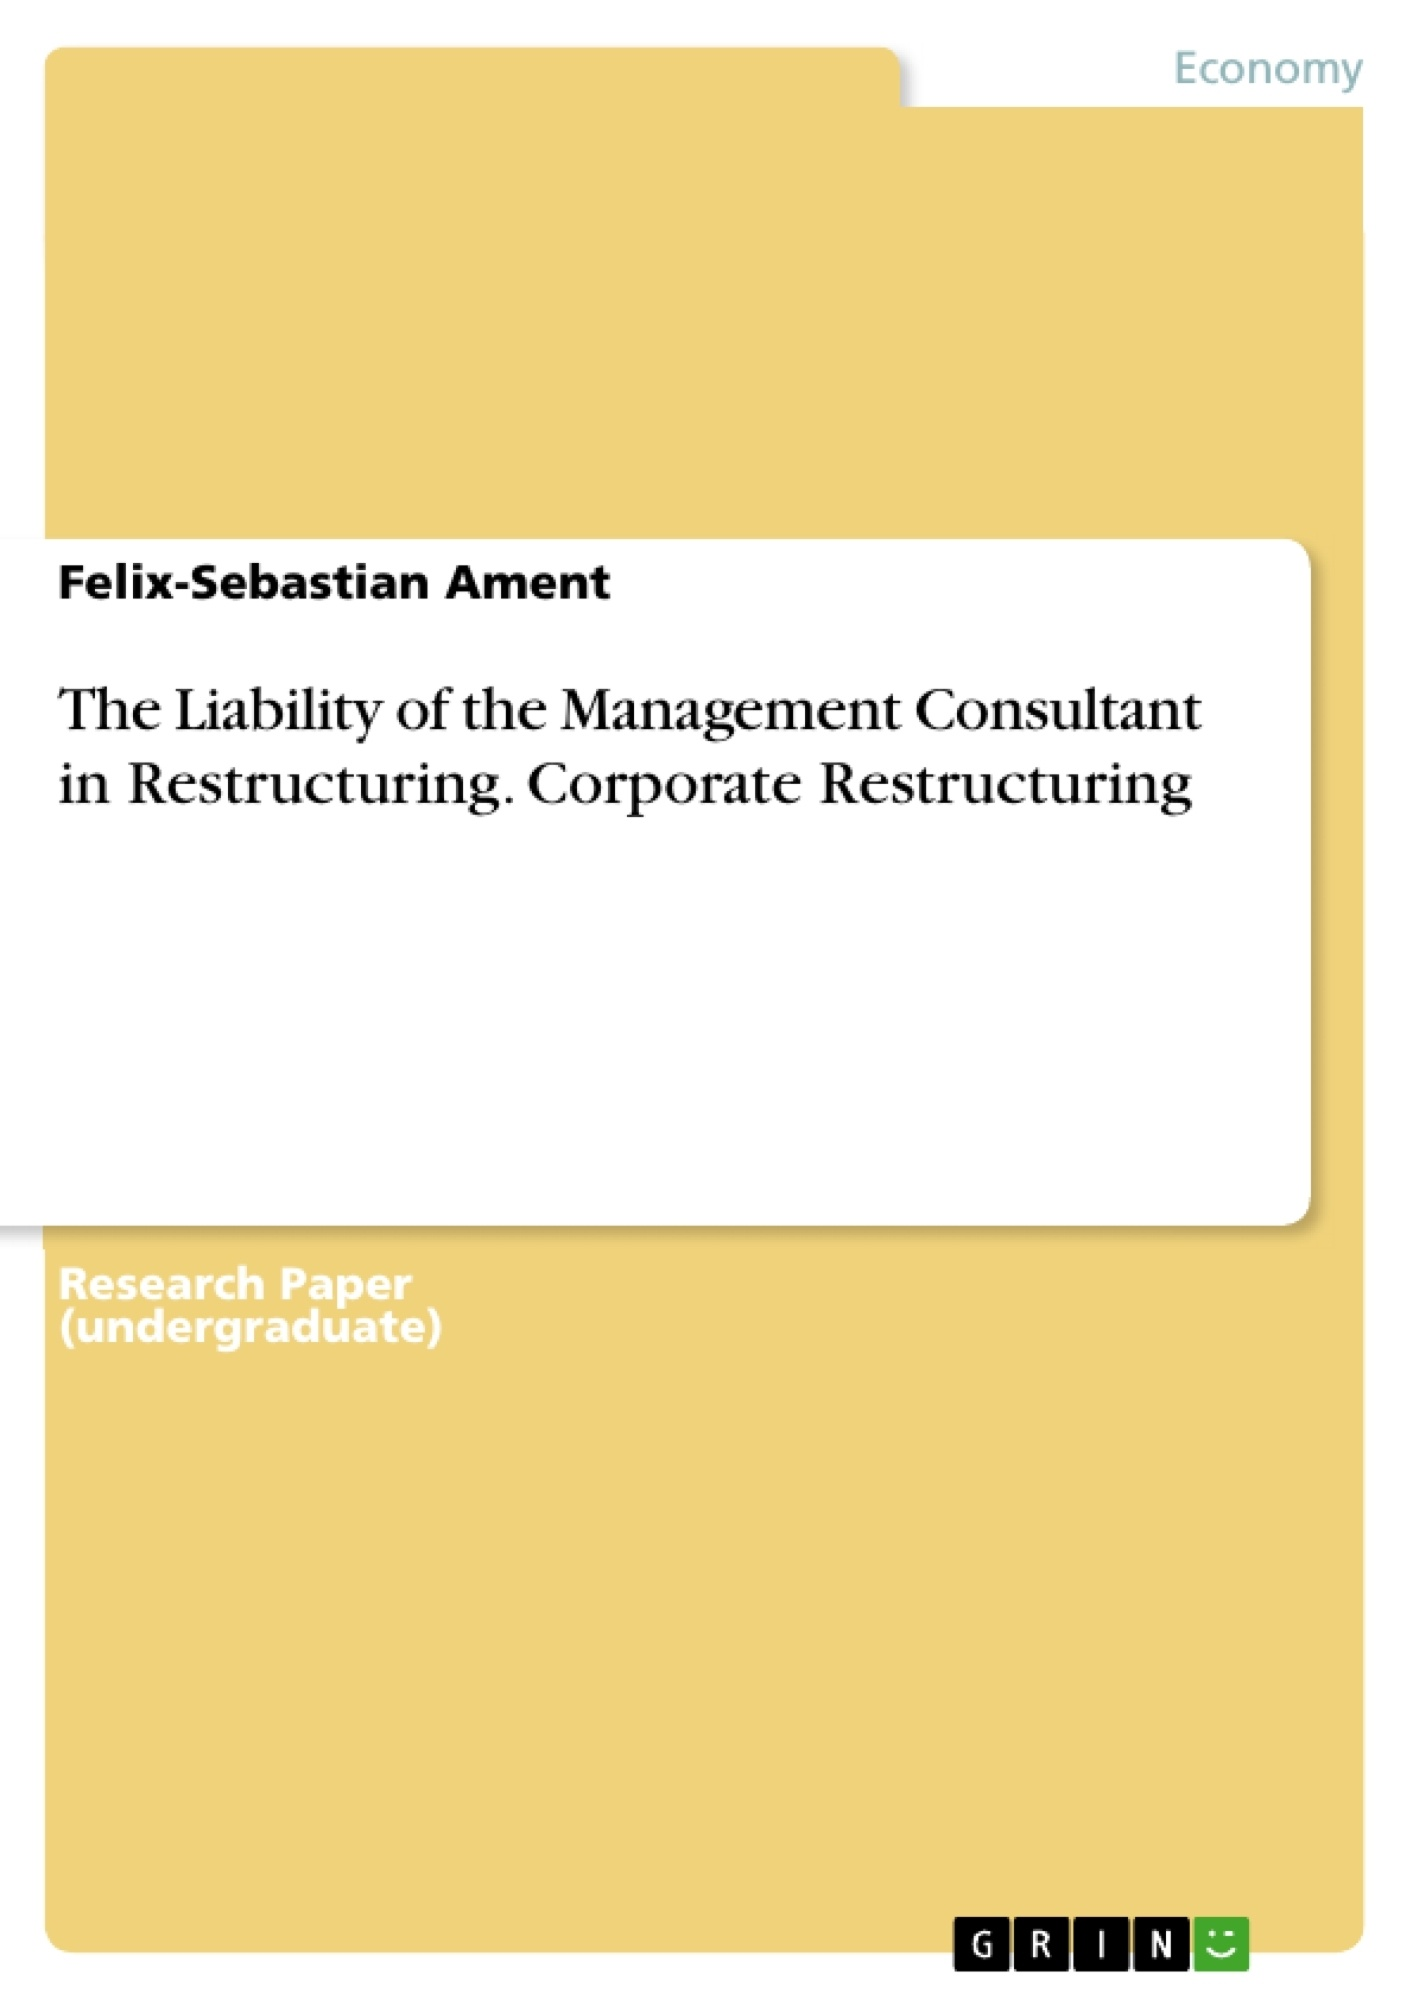 Title: The Liability of the Management Consultant in Restructuring. Corporate Restructuring